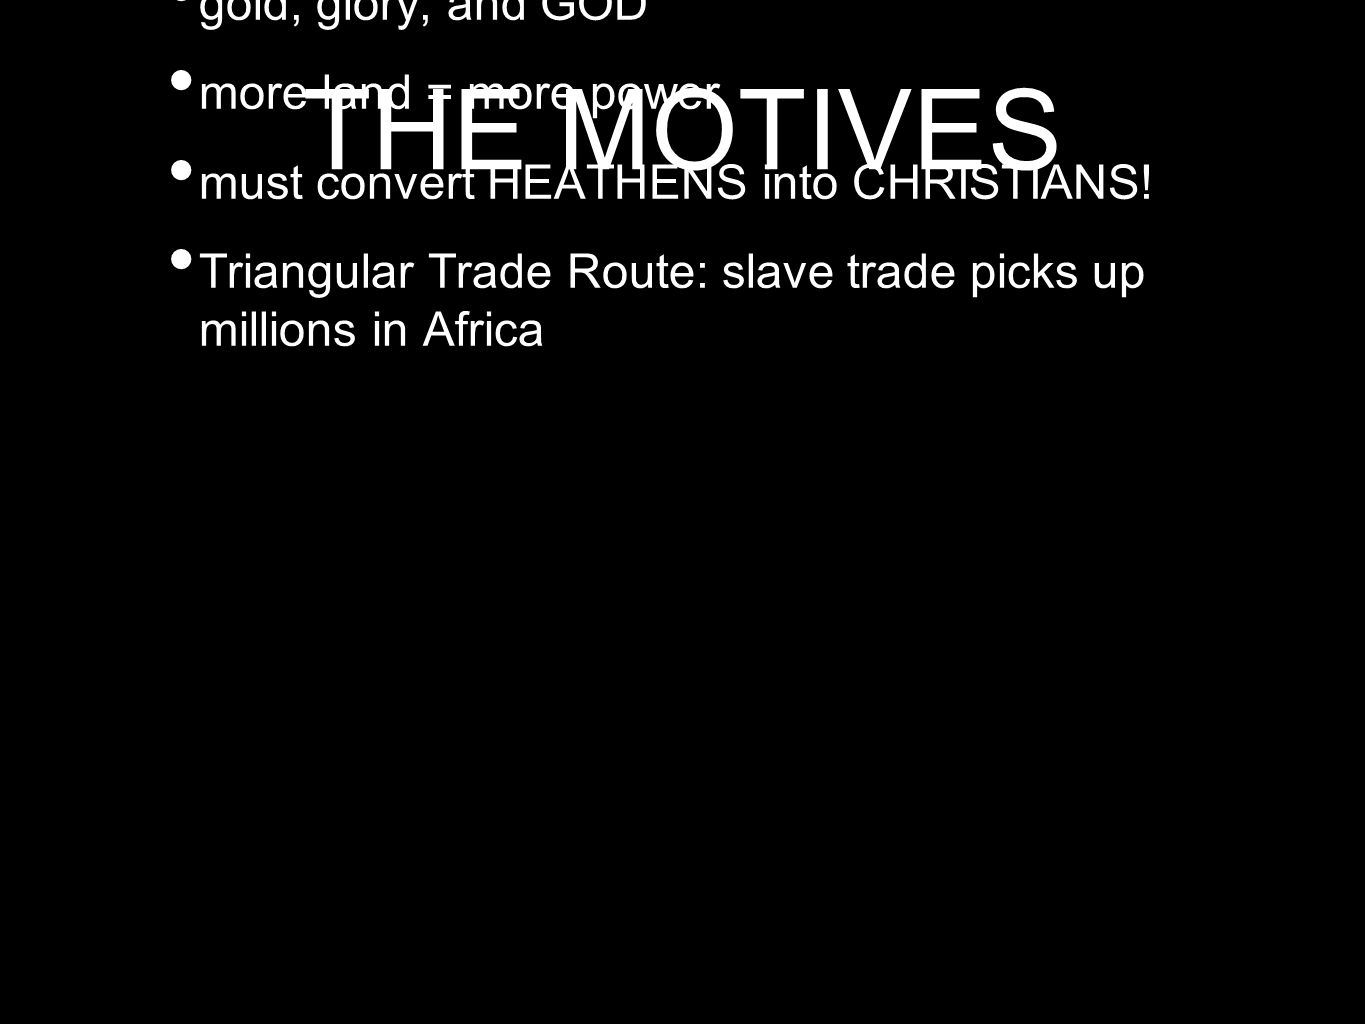 THE MOTIVES gold, glory, and GOD more land = more power must convert HEATHENS into CHRISTIANS! Triangular Trade Route: slave trade picks up millions i